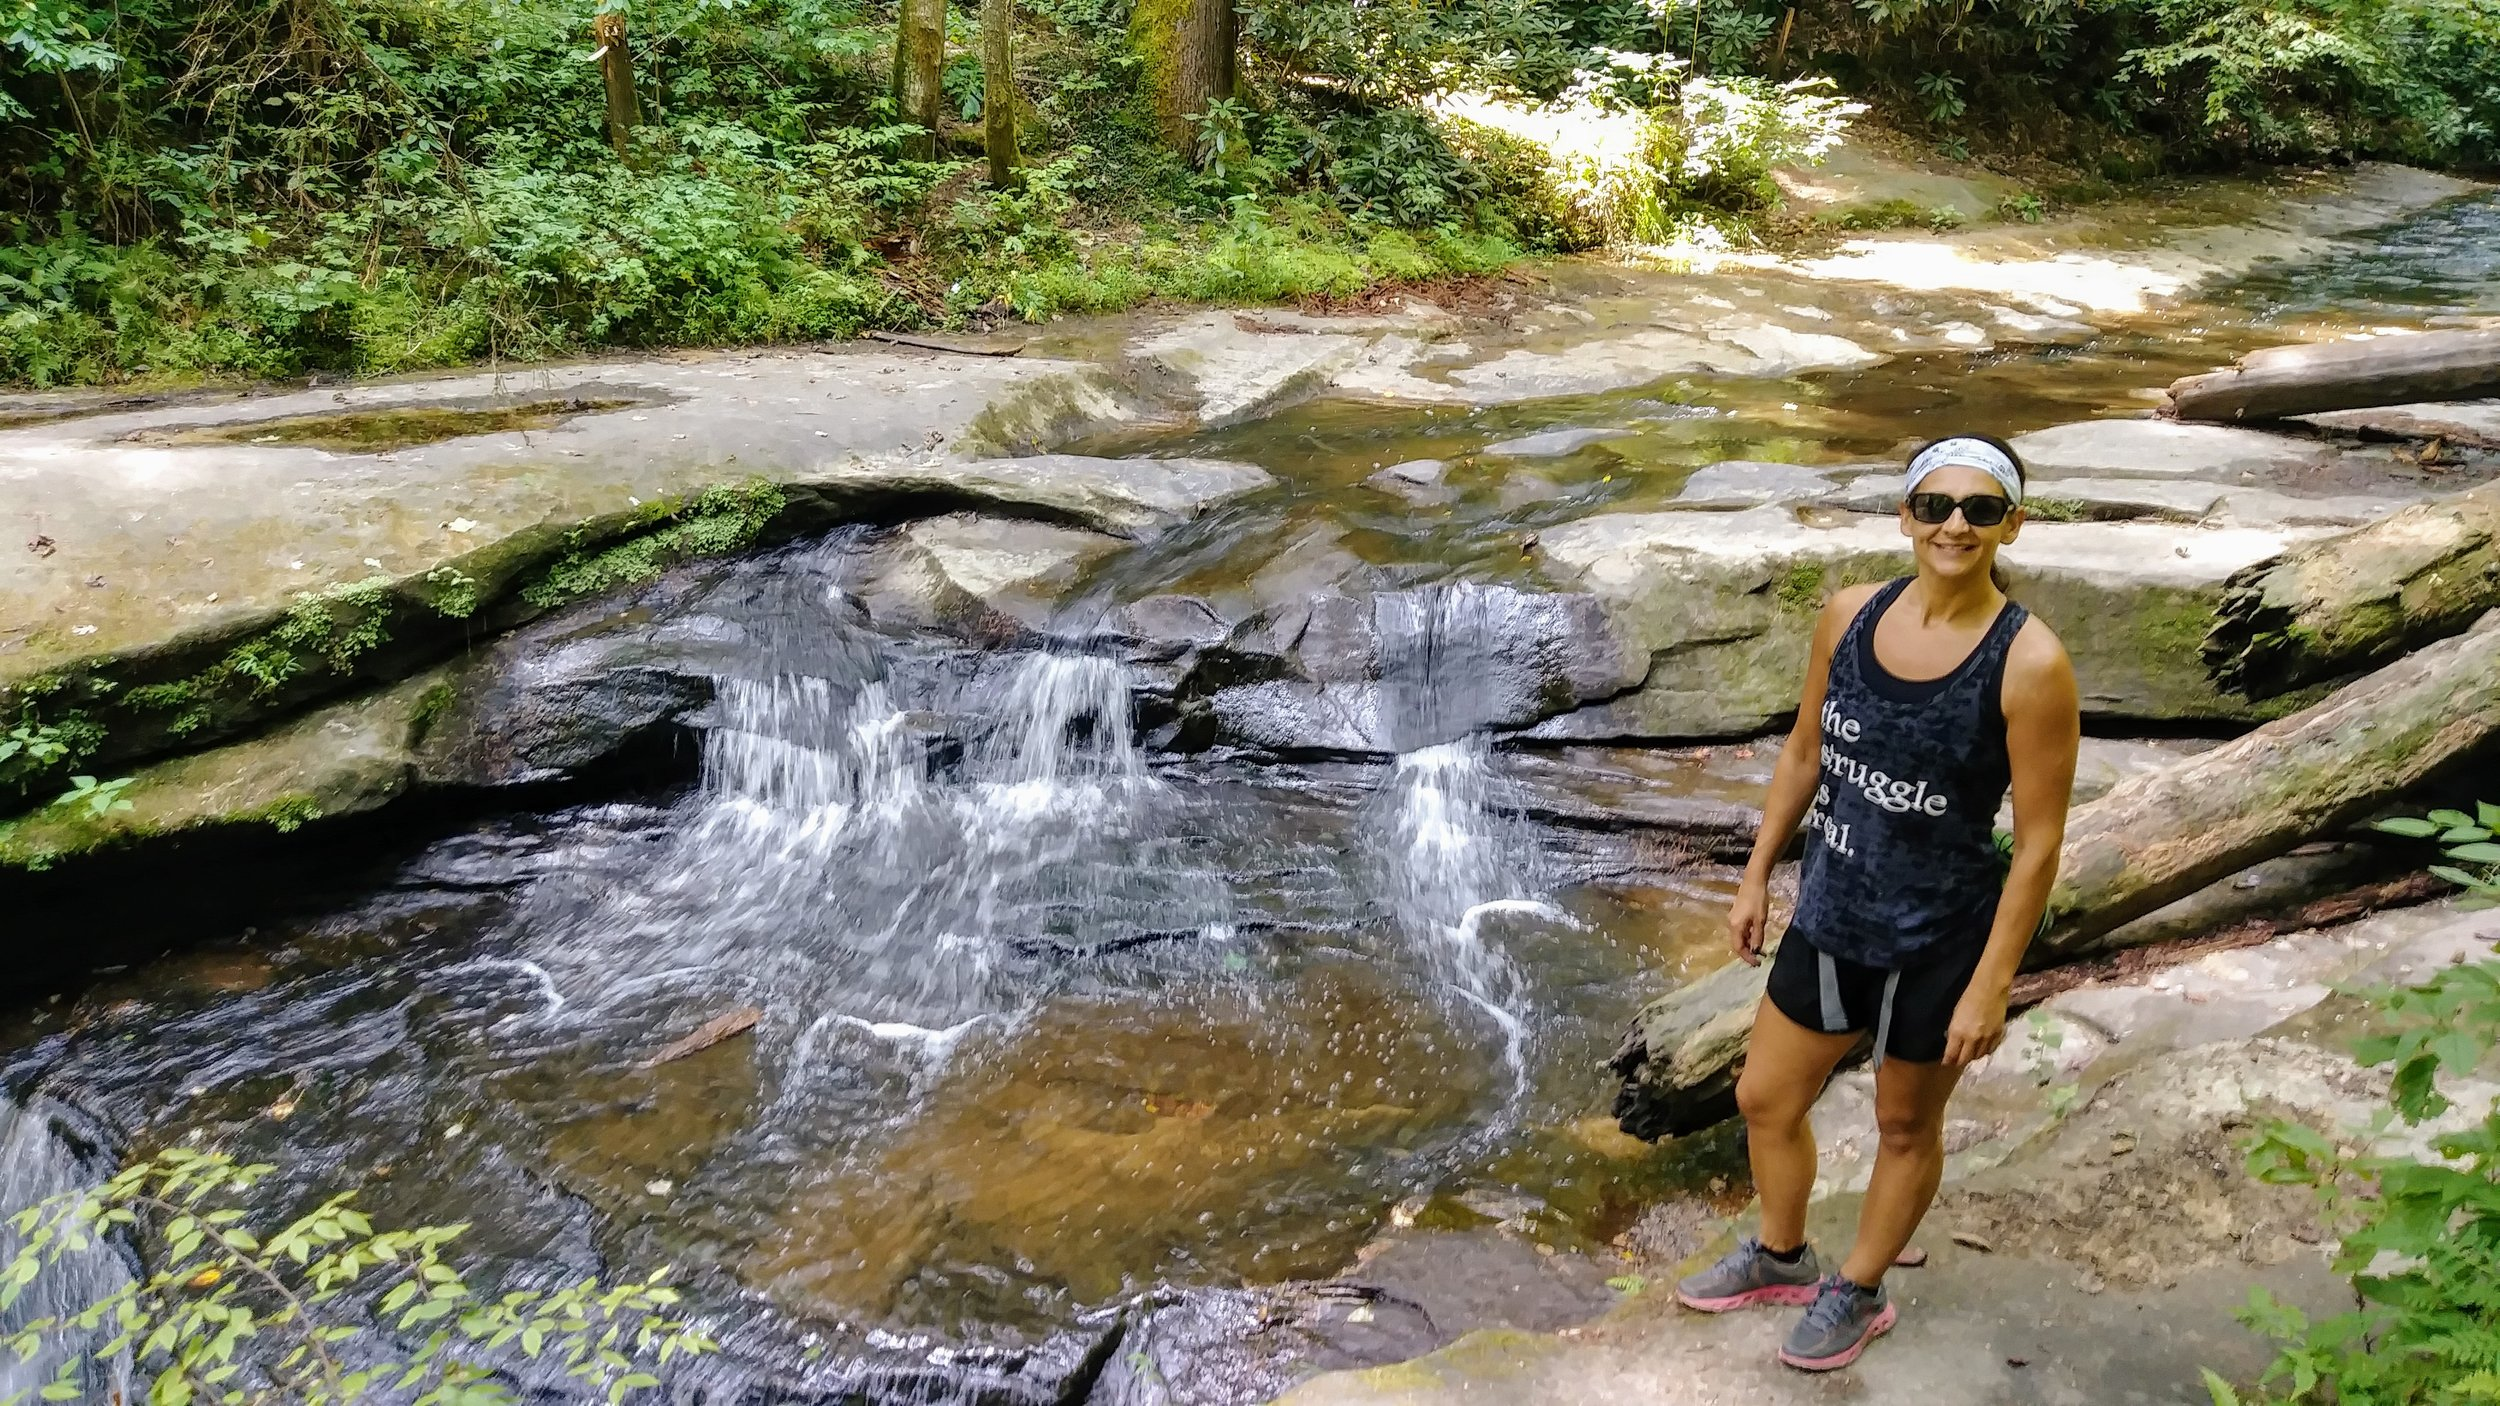 Standing next to the top of Creation Falls on Rock Bridge Trail